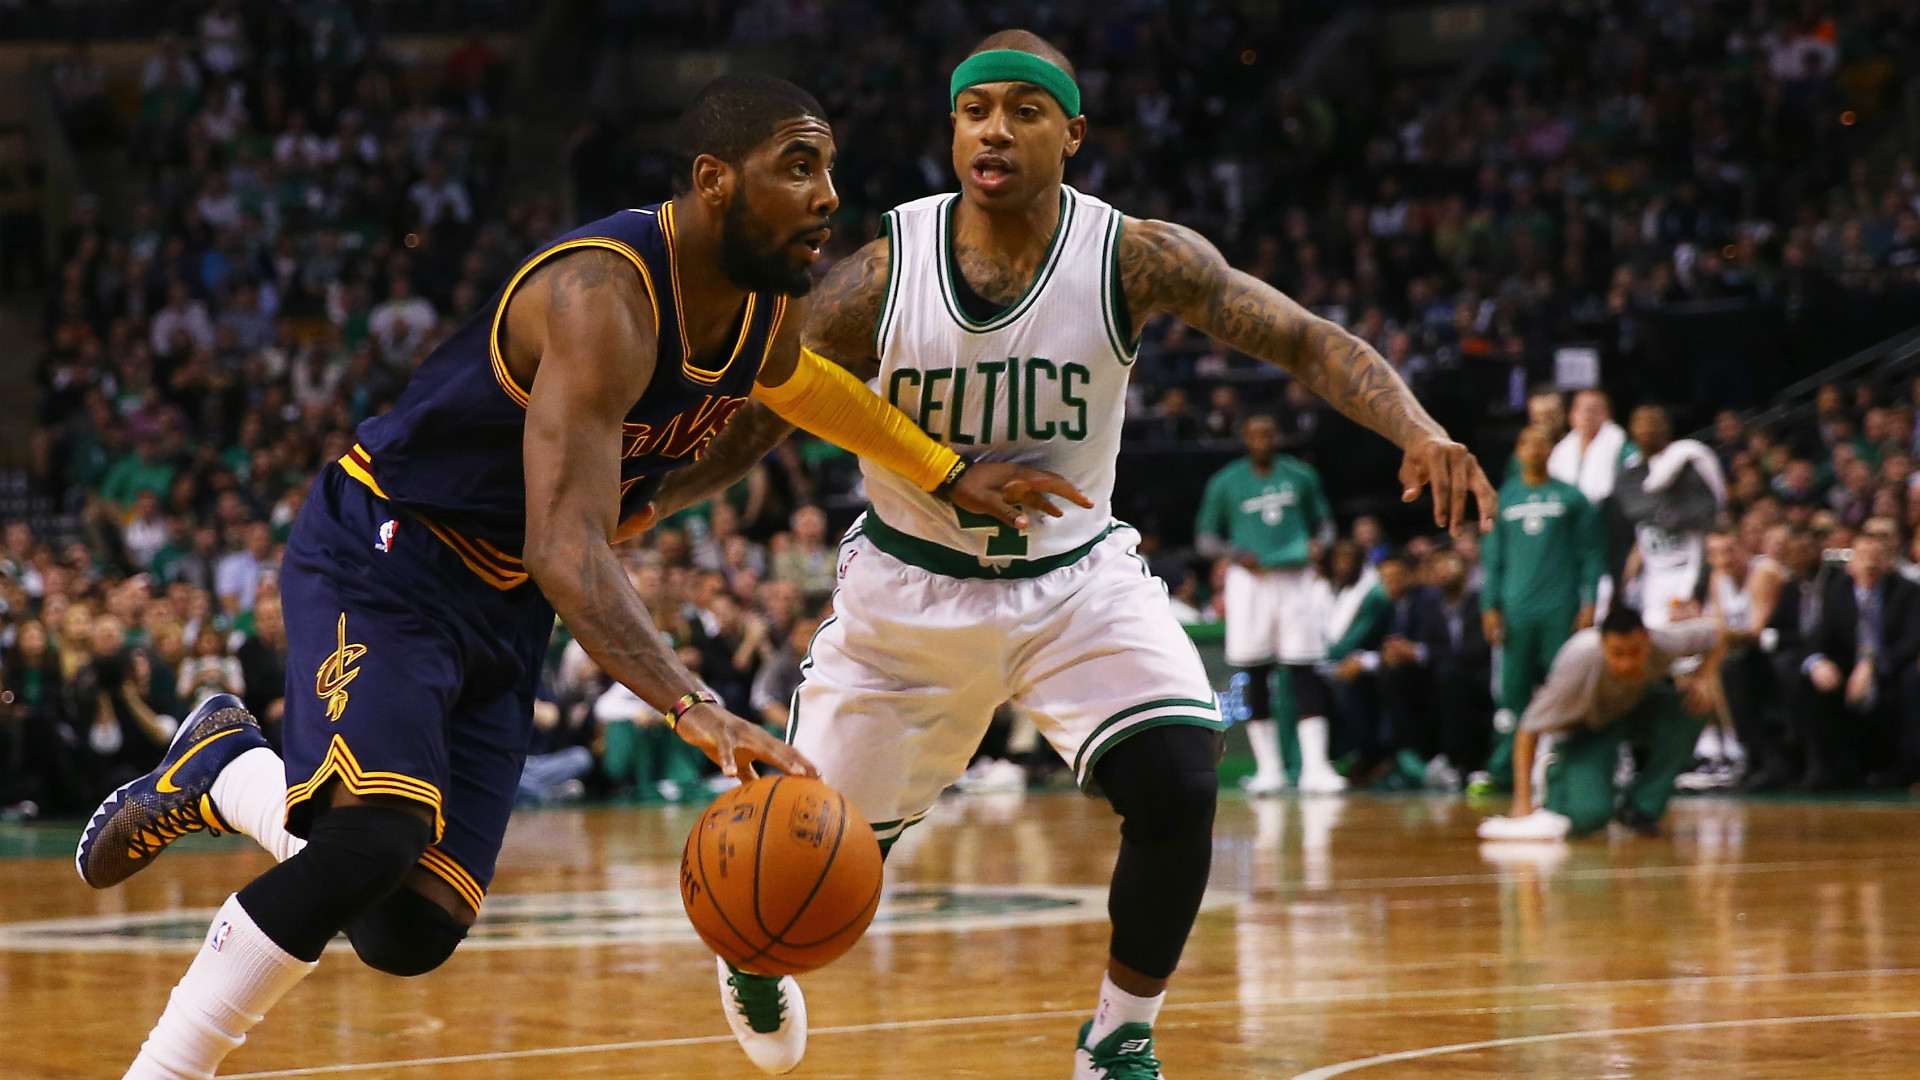 Res: 1920x1080, Report: Kyrie Irving trade could be voided by Isaiah Thomas' injury | NBA |  Sporting News